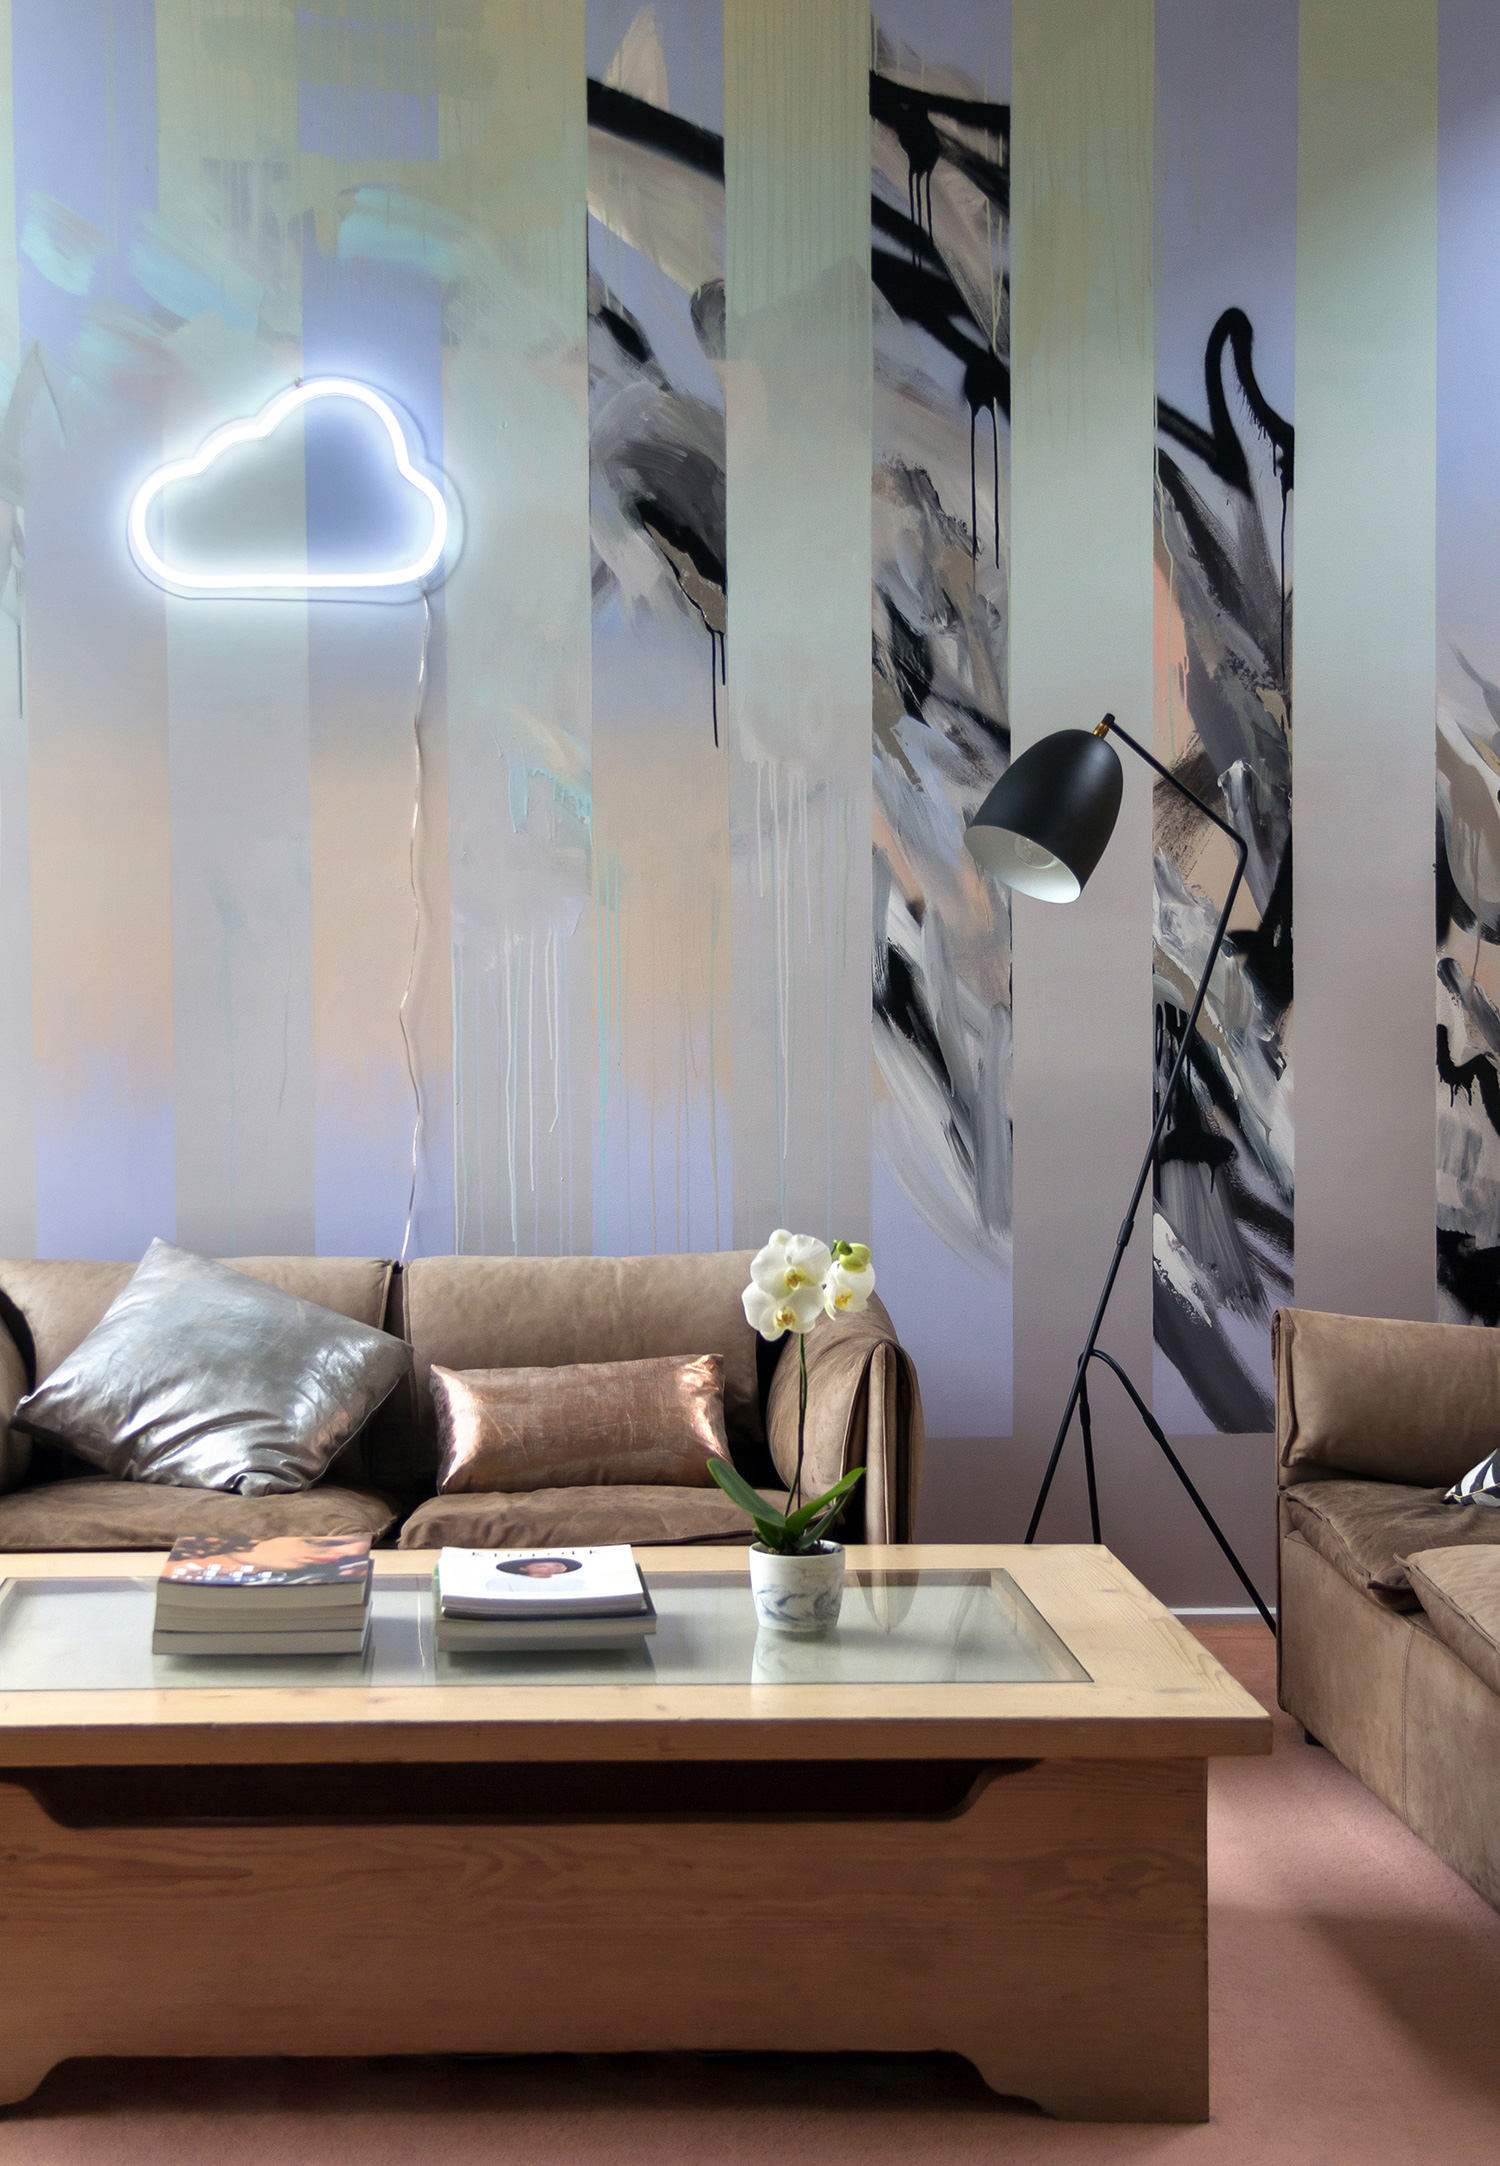 Abstract mural in living room painted with black and white and gradient, beautifully styled with brown vintage leather couches, metallic silver and copper cushions, contemporary black lamp and orchid in marble plant holder.